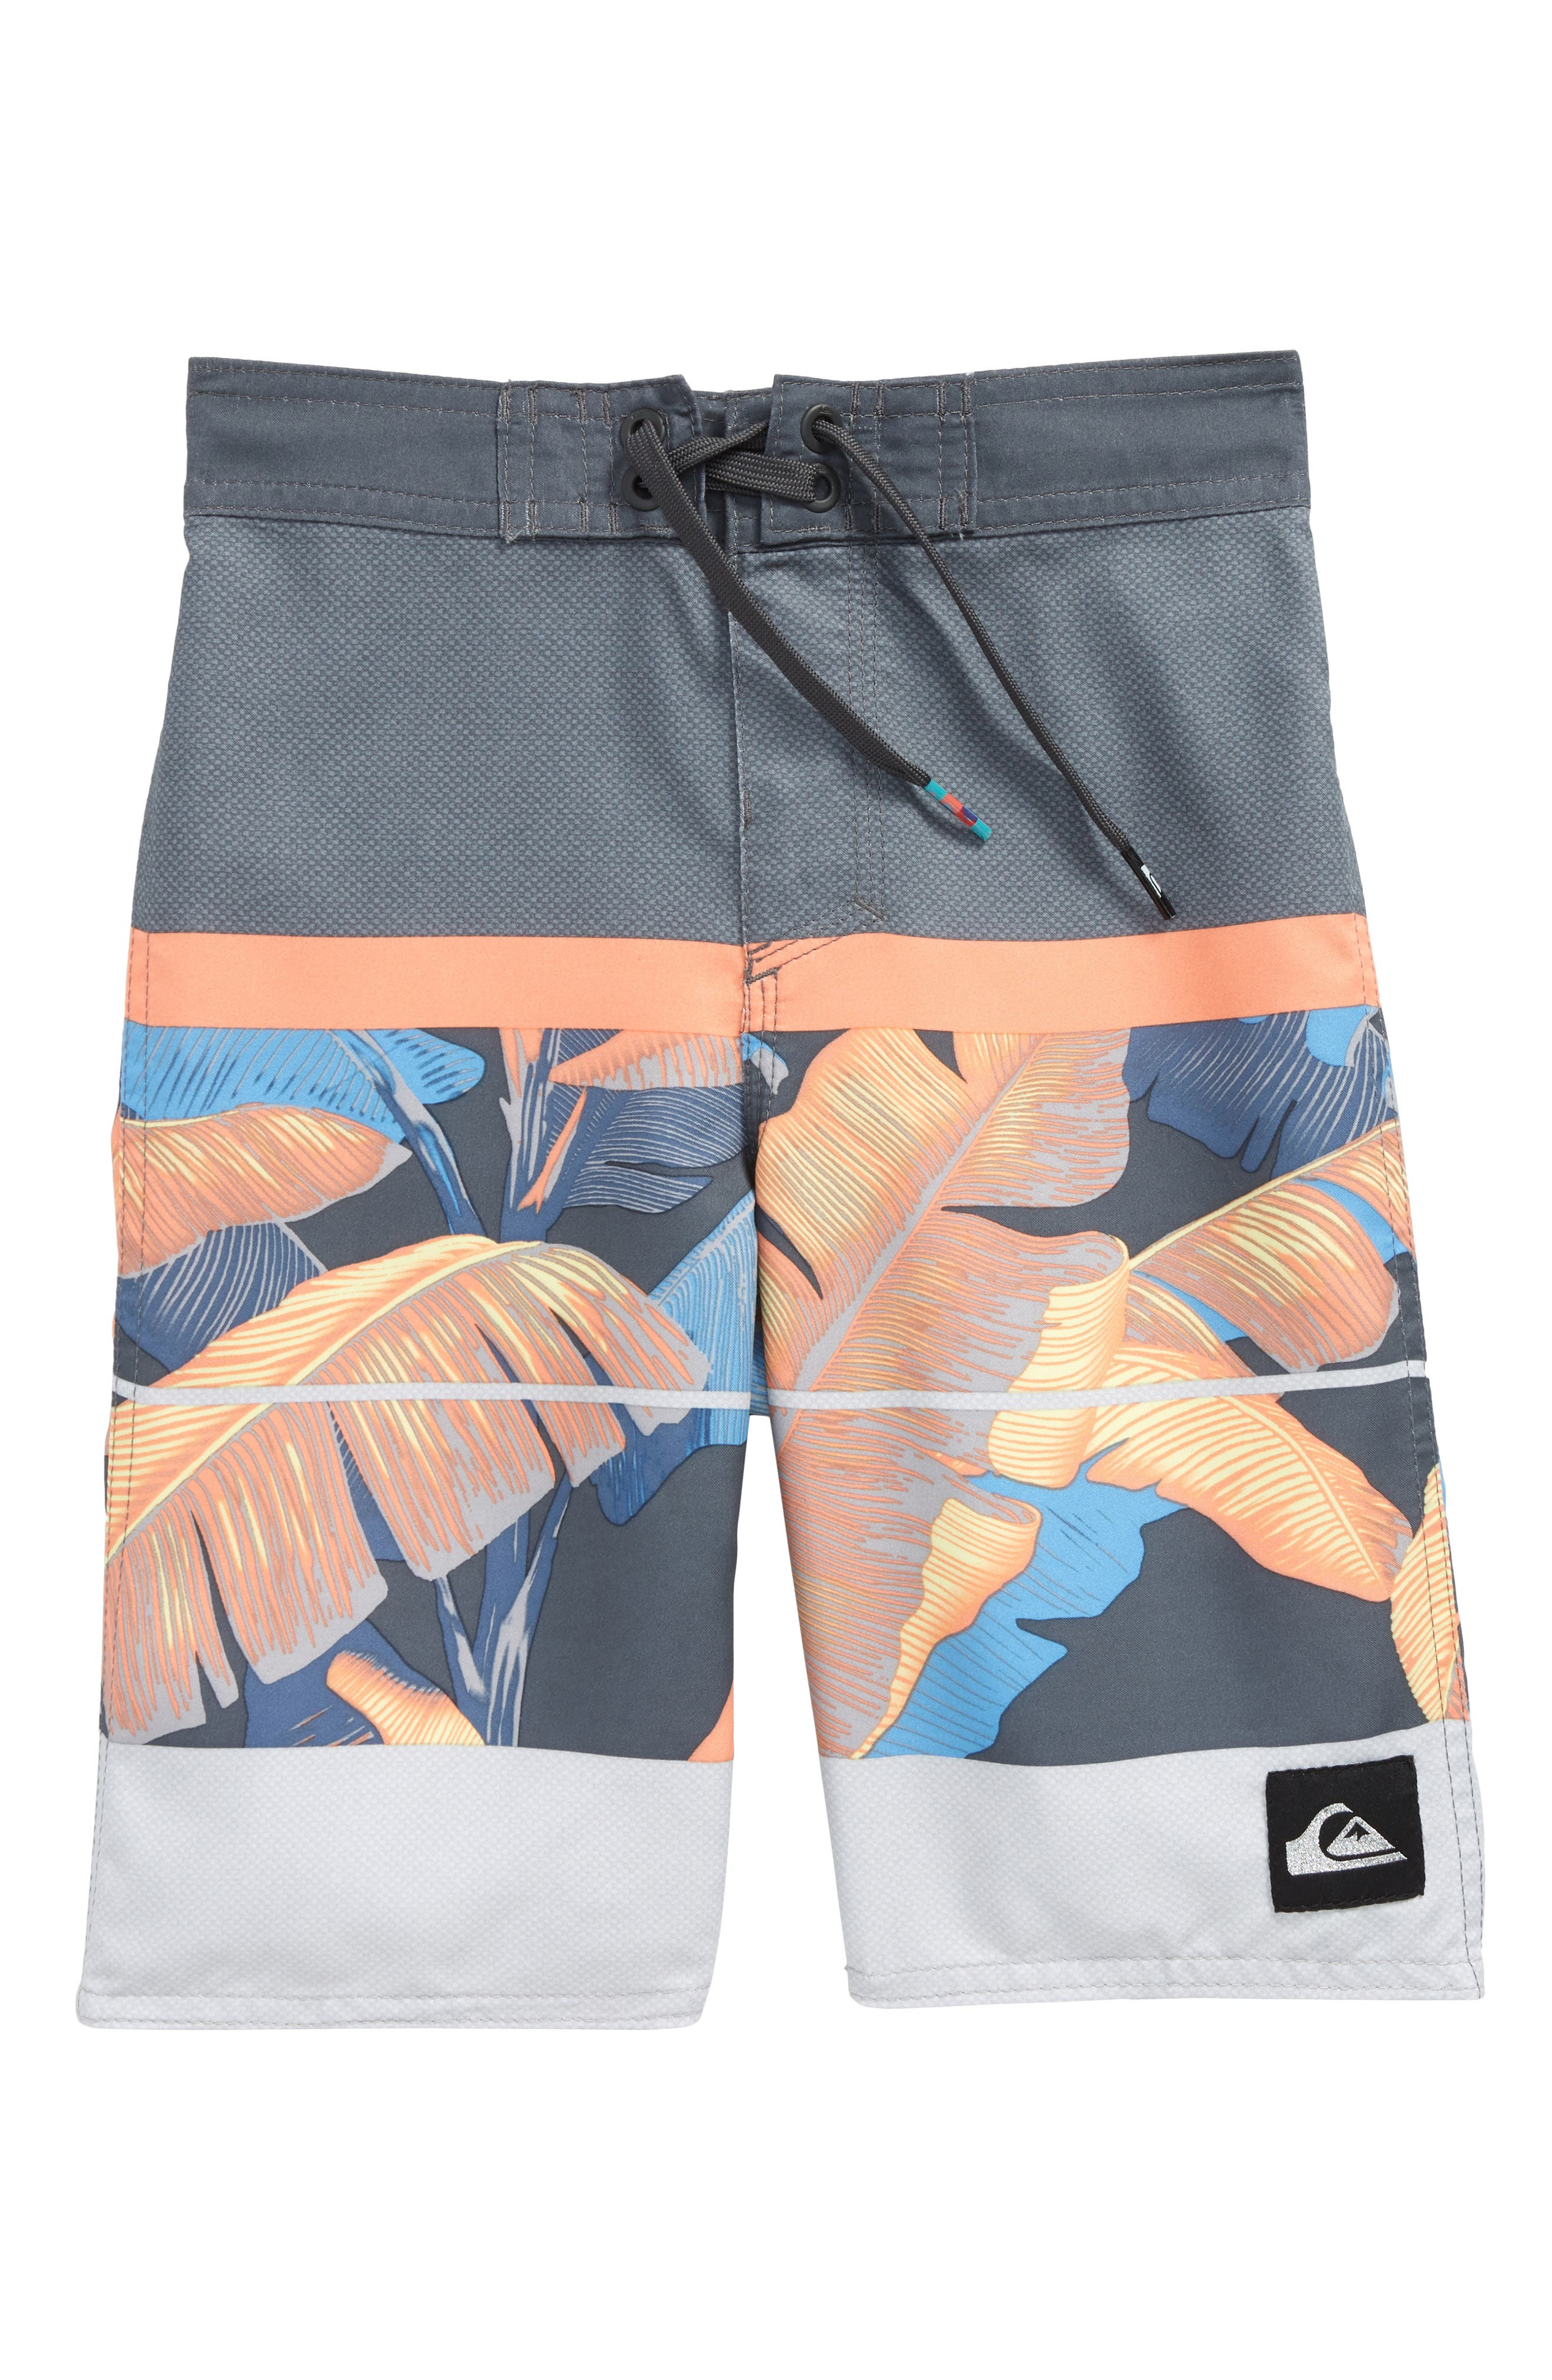 Main Image - Quiksilver Slab Island Board Shorts (Toddler Boys & Little Boys)